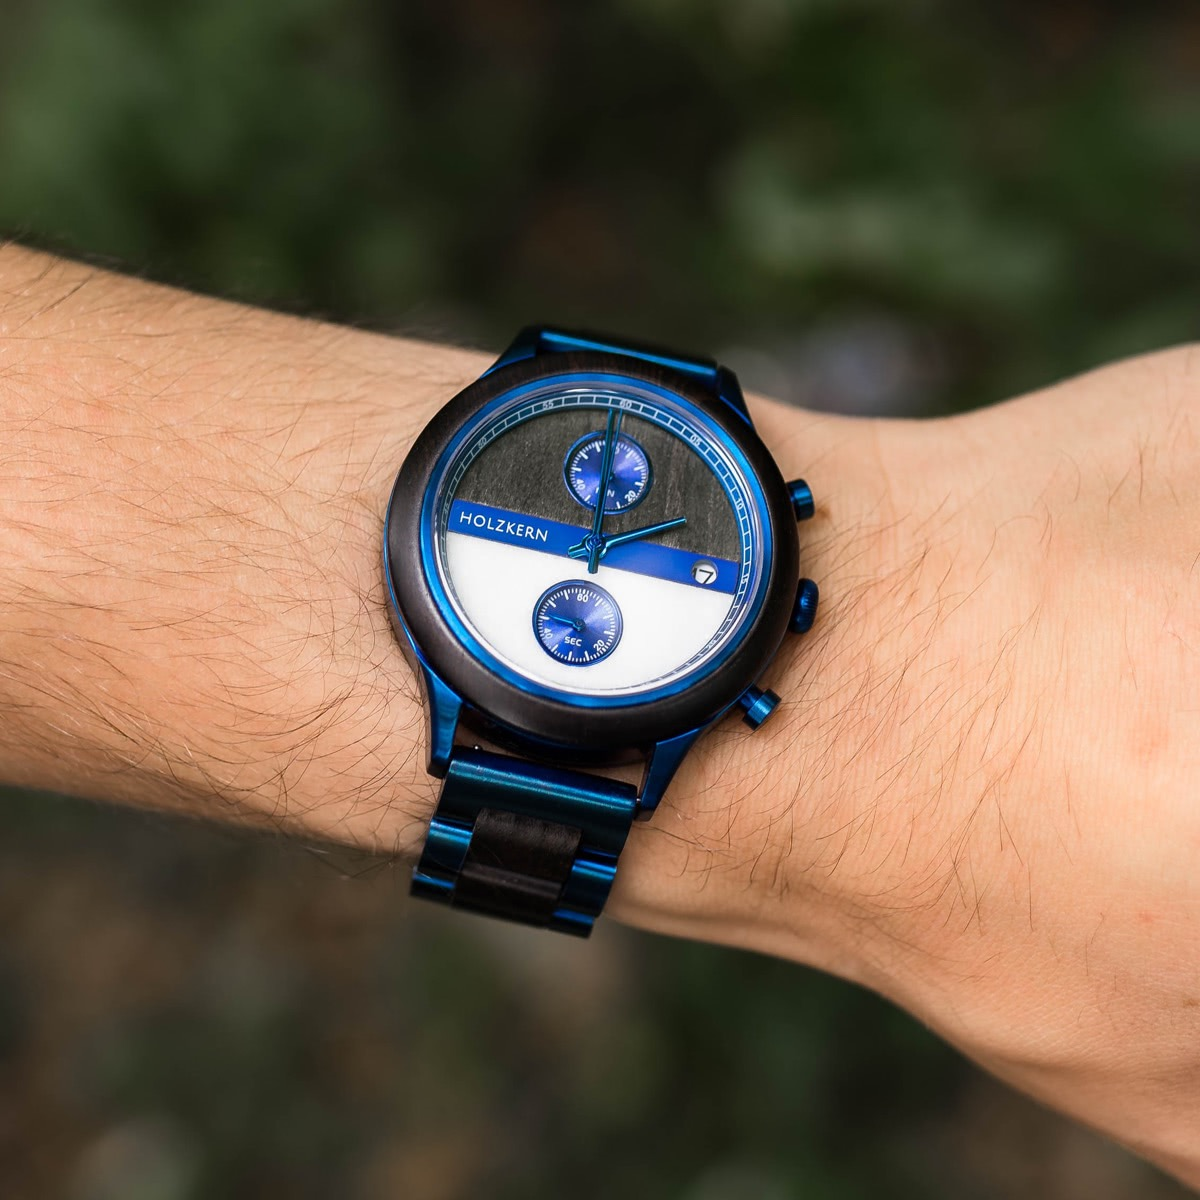 Holzkern creates men's wood watches like Bixby on this picture